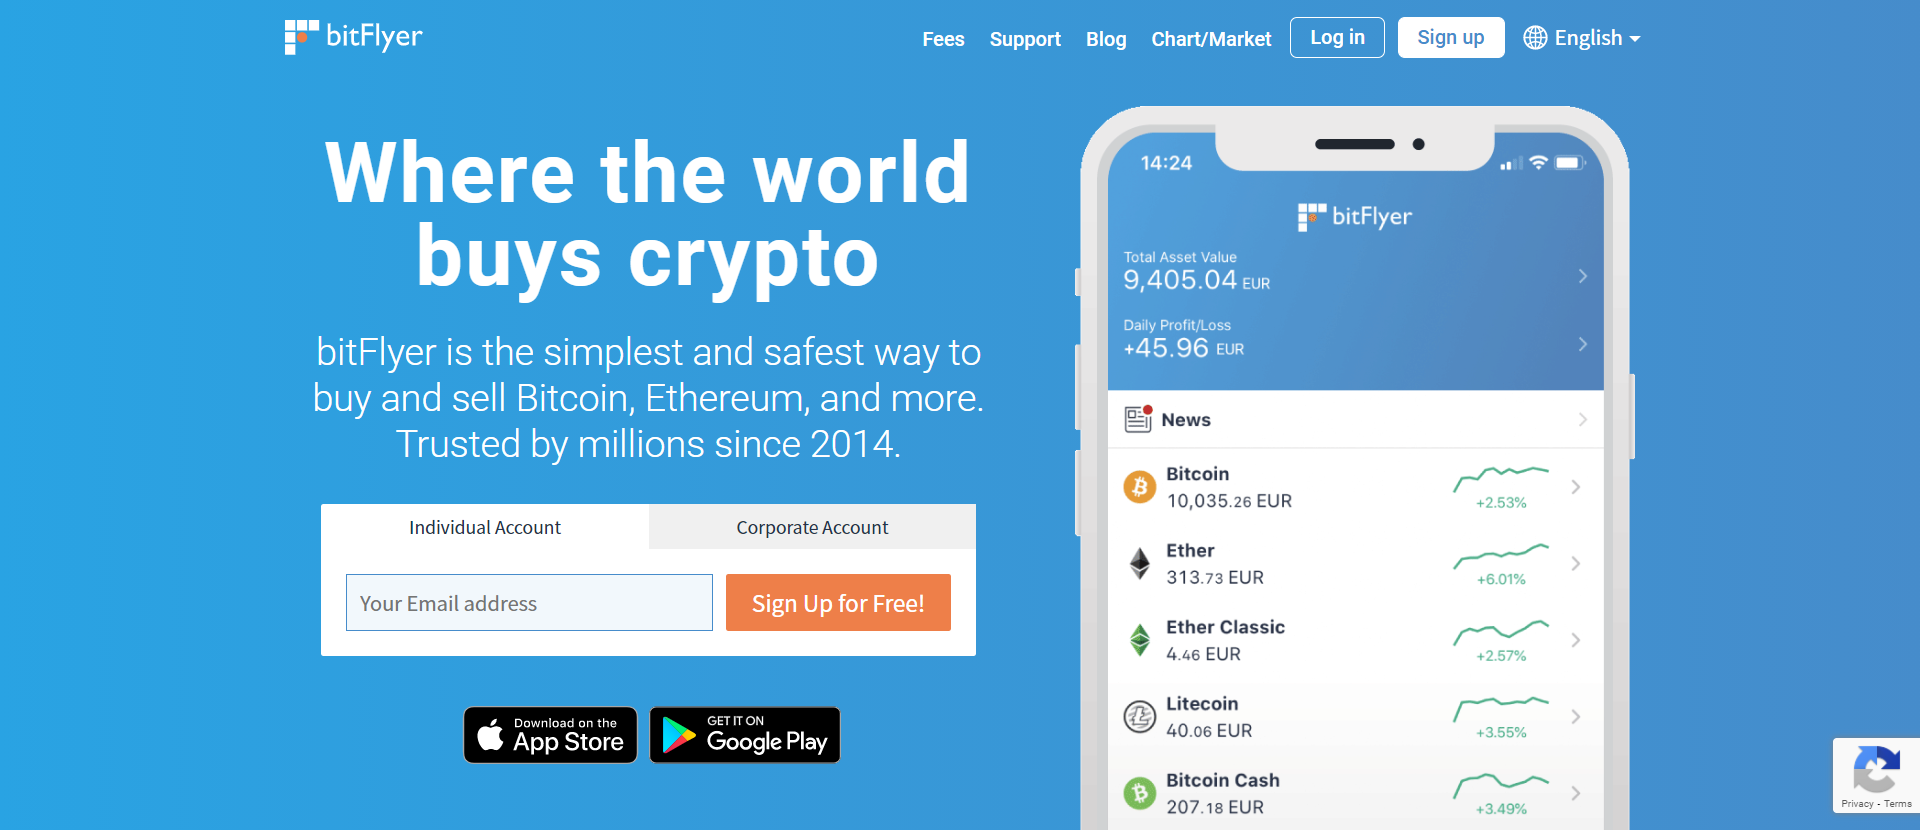 bitFlyer opens BTC/JPY trading for US customers